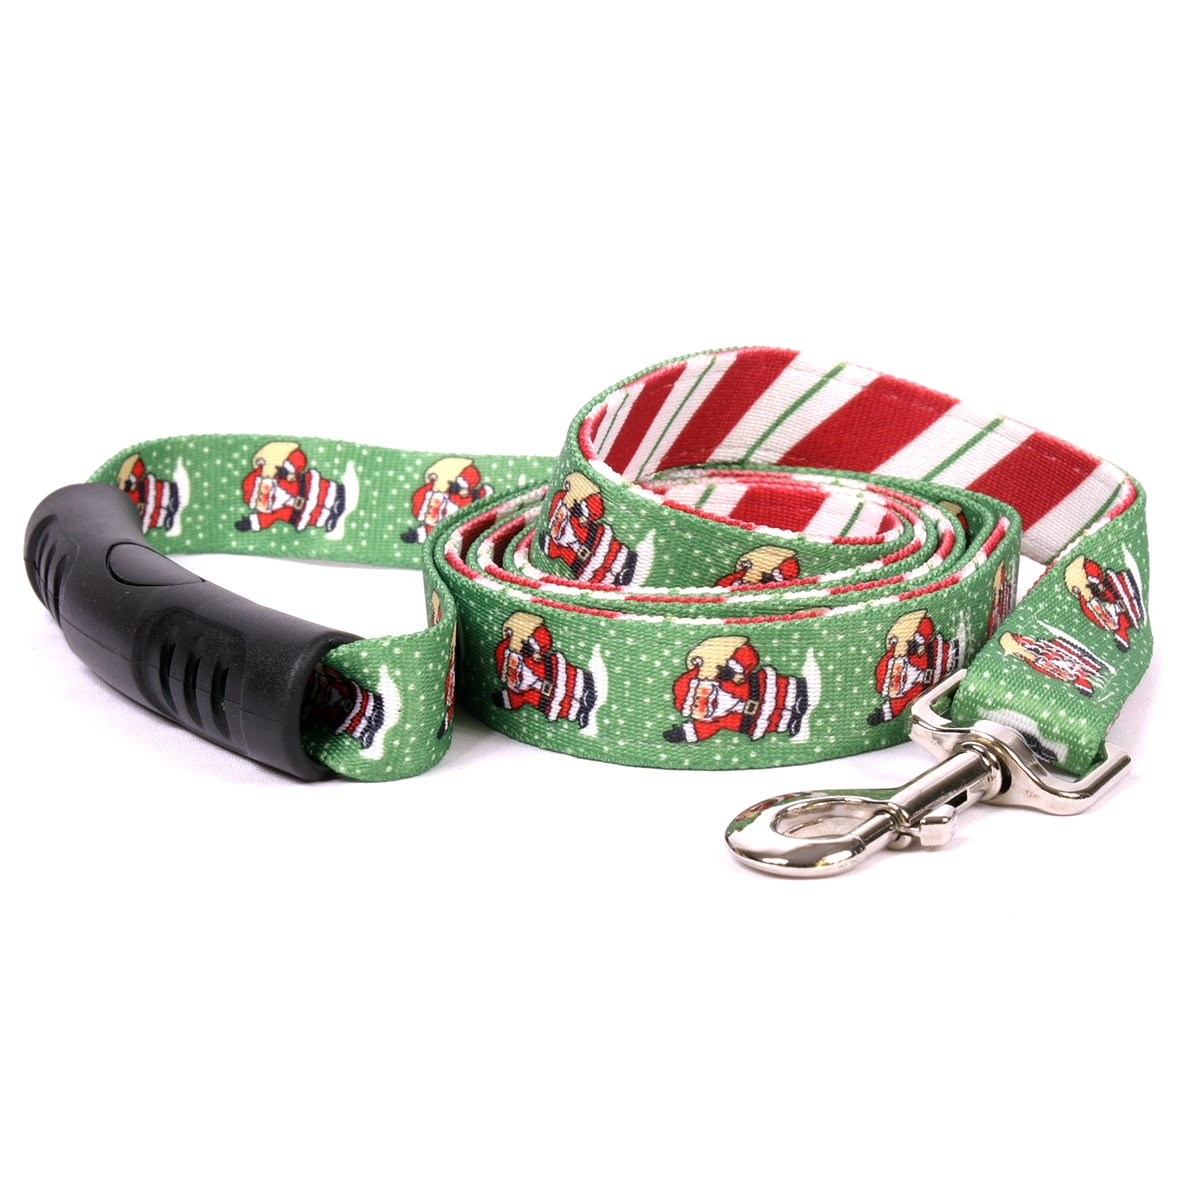 Yellow Dog Design Santa Claus Uptown Dog Leash-Size Large-1 Inch Wide and 5 feet (60 inches) Long by Yellow Dog Design